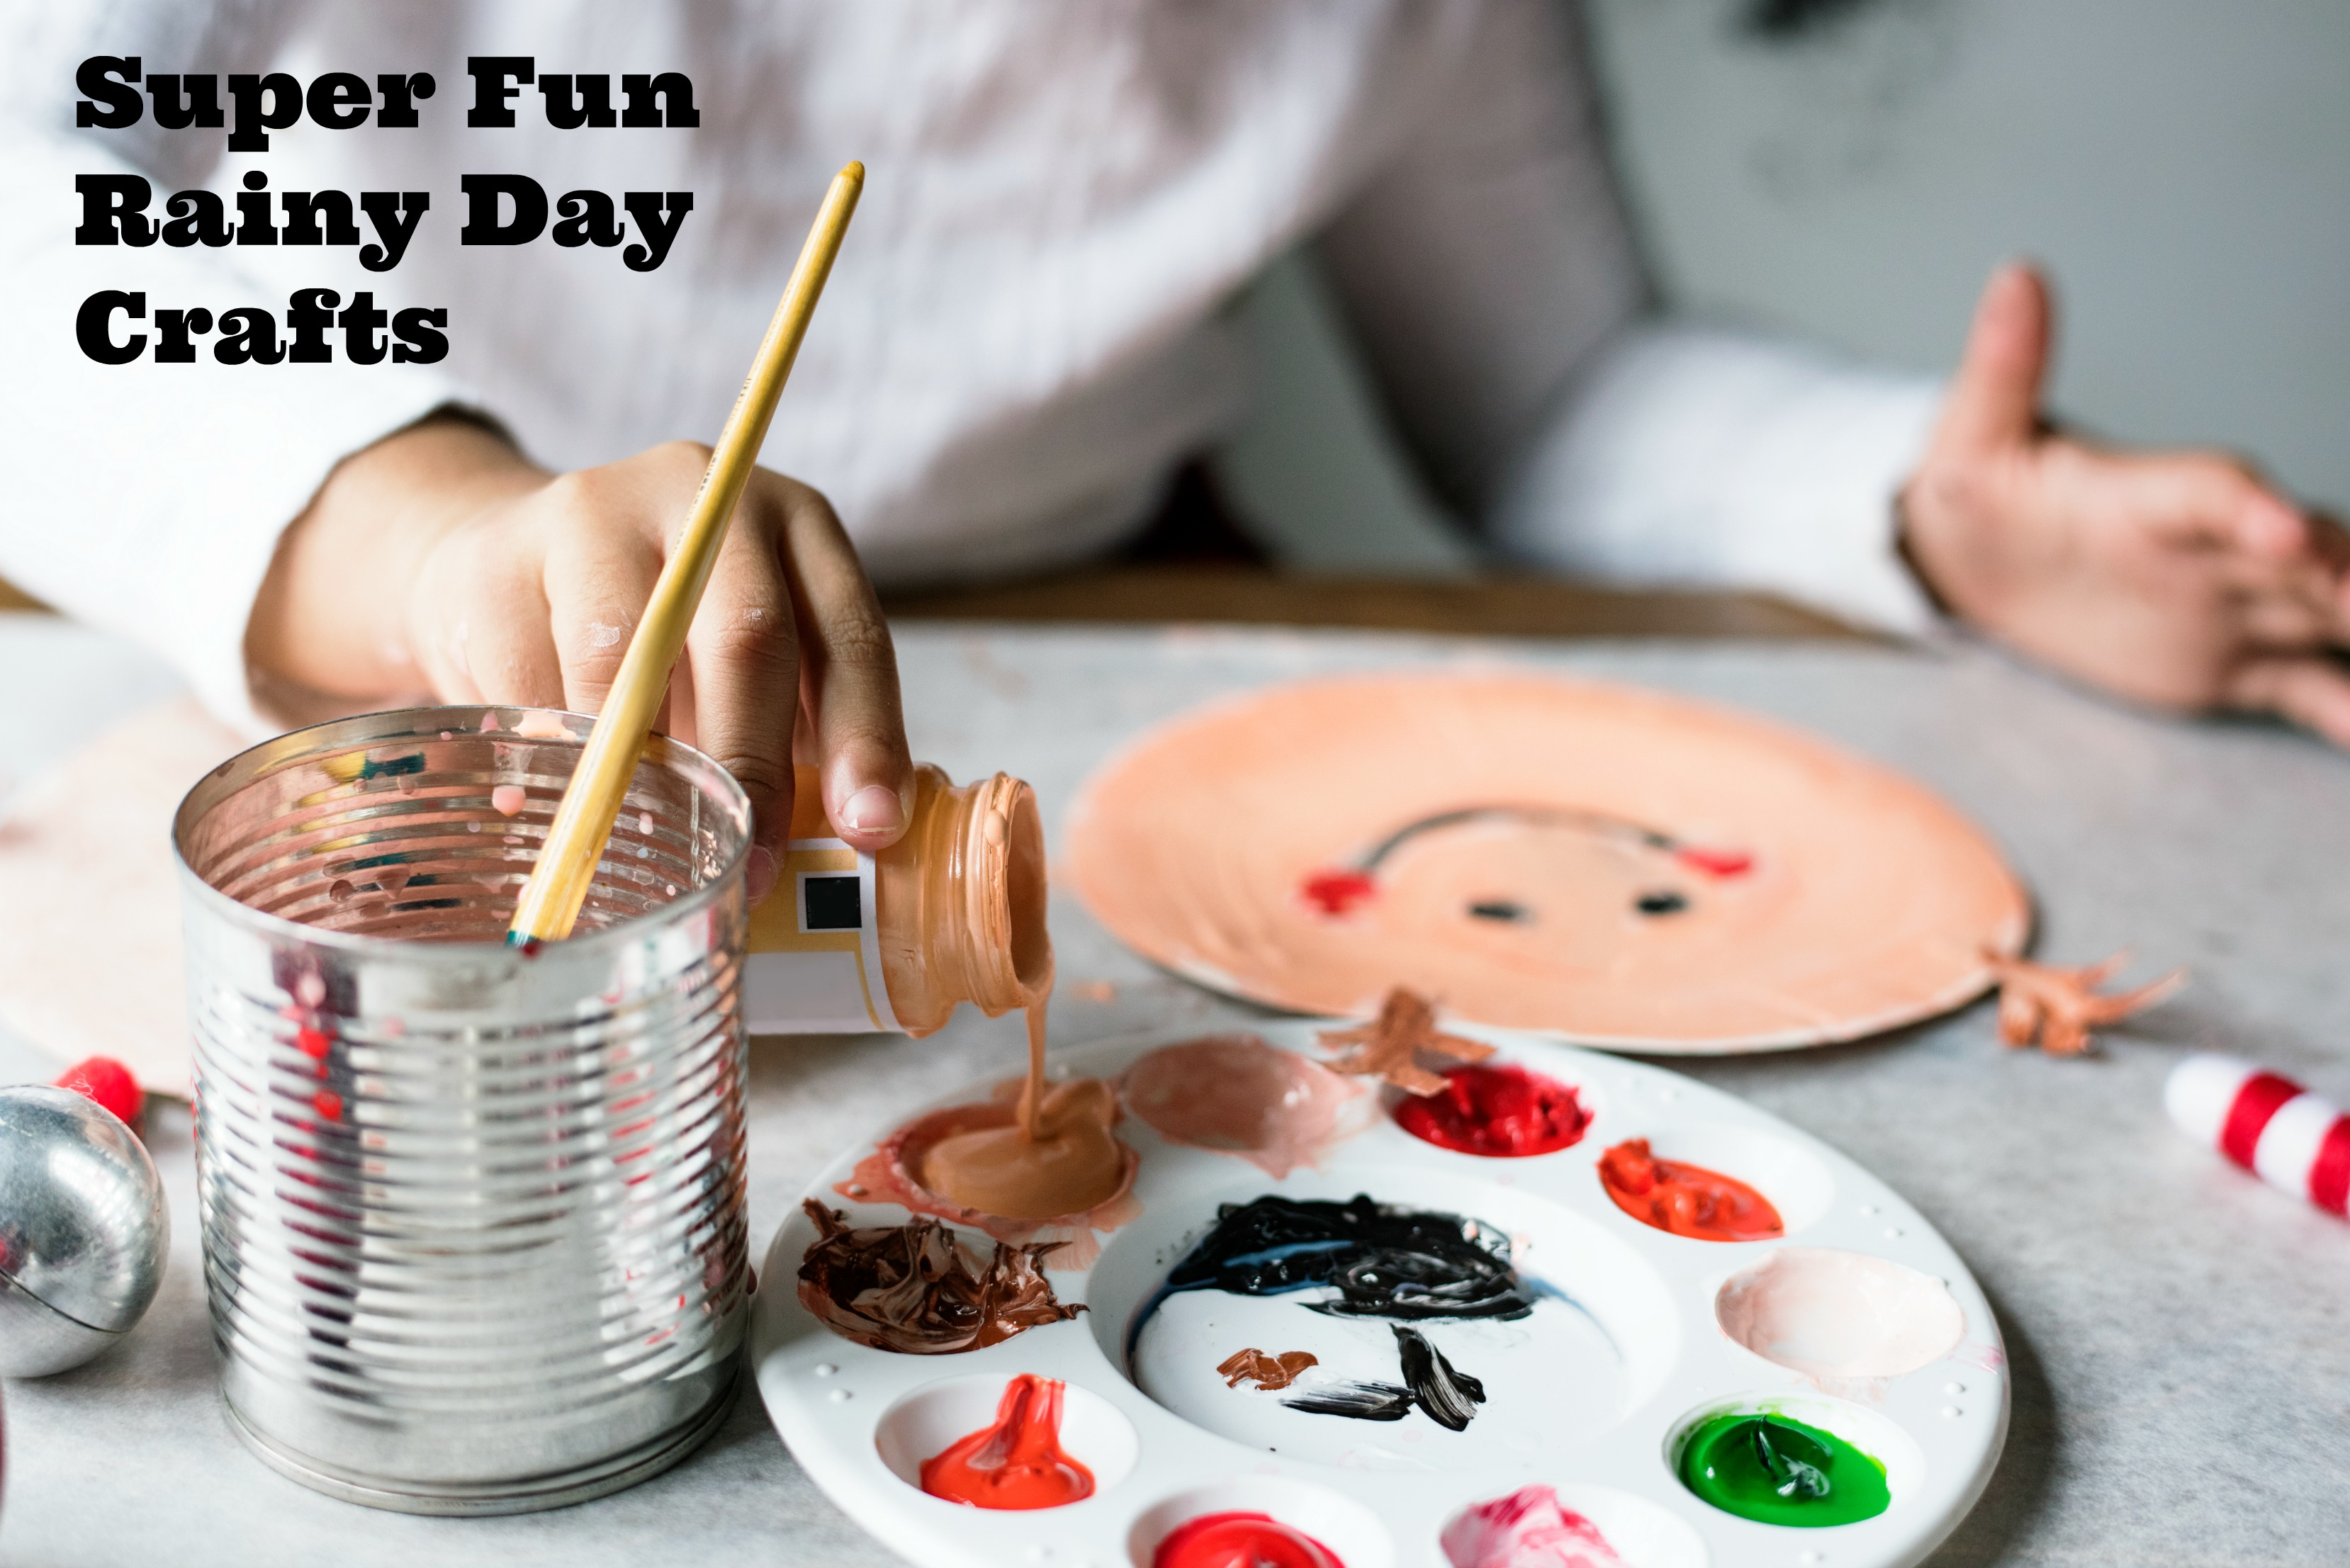 Super Fun Craft Projects for a Rainy Weekend